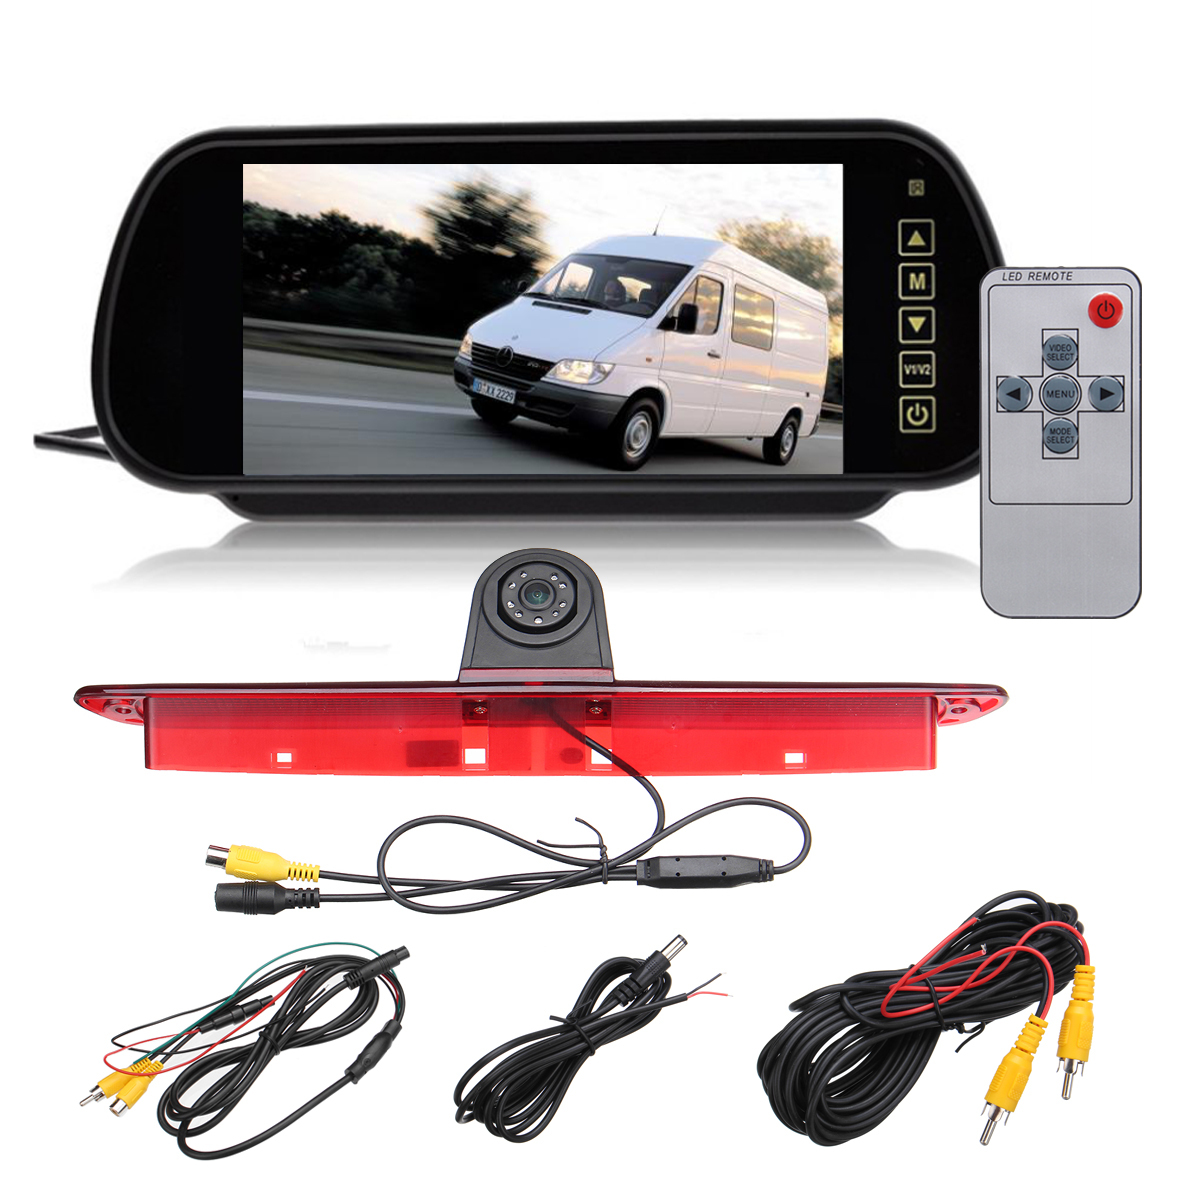 New Car Backup View Camera Brake Light IR Rear View Reversing Camera 7 inch Rearview Display Monitor Kit for Mercedes SprinterNew Car Backup View Camera Brake Light IR Rear View Reversing Camera 7 inch Rearview Display Monitor Kit for Mercedes Sprinter